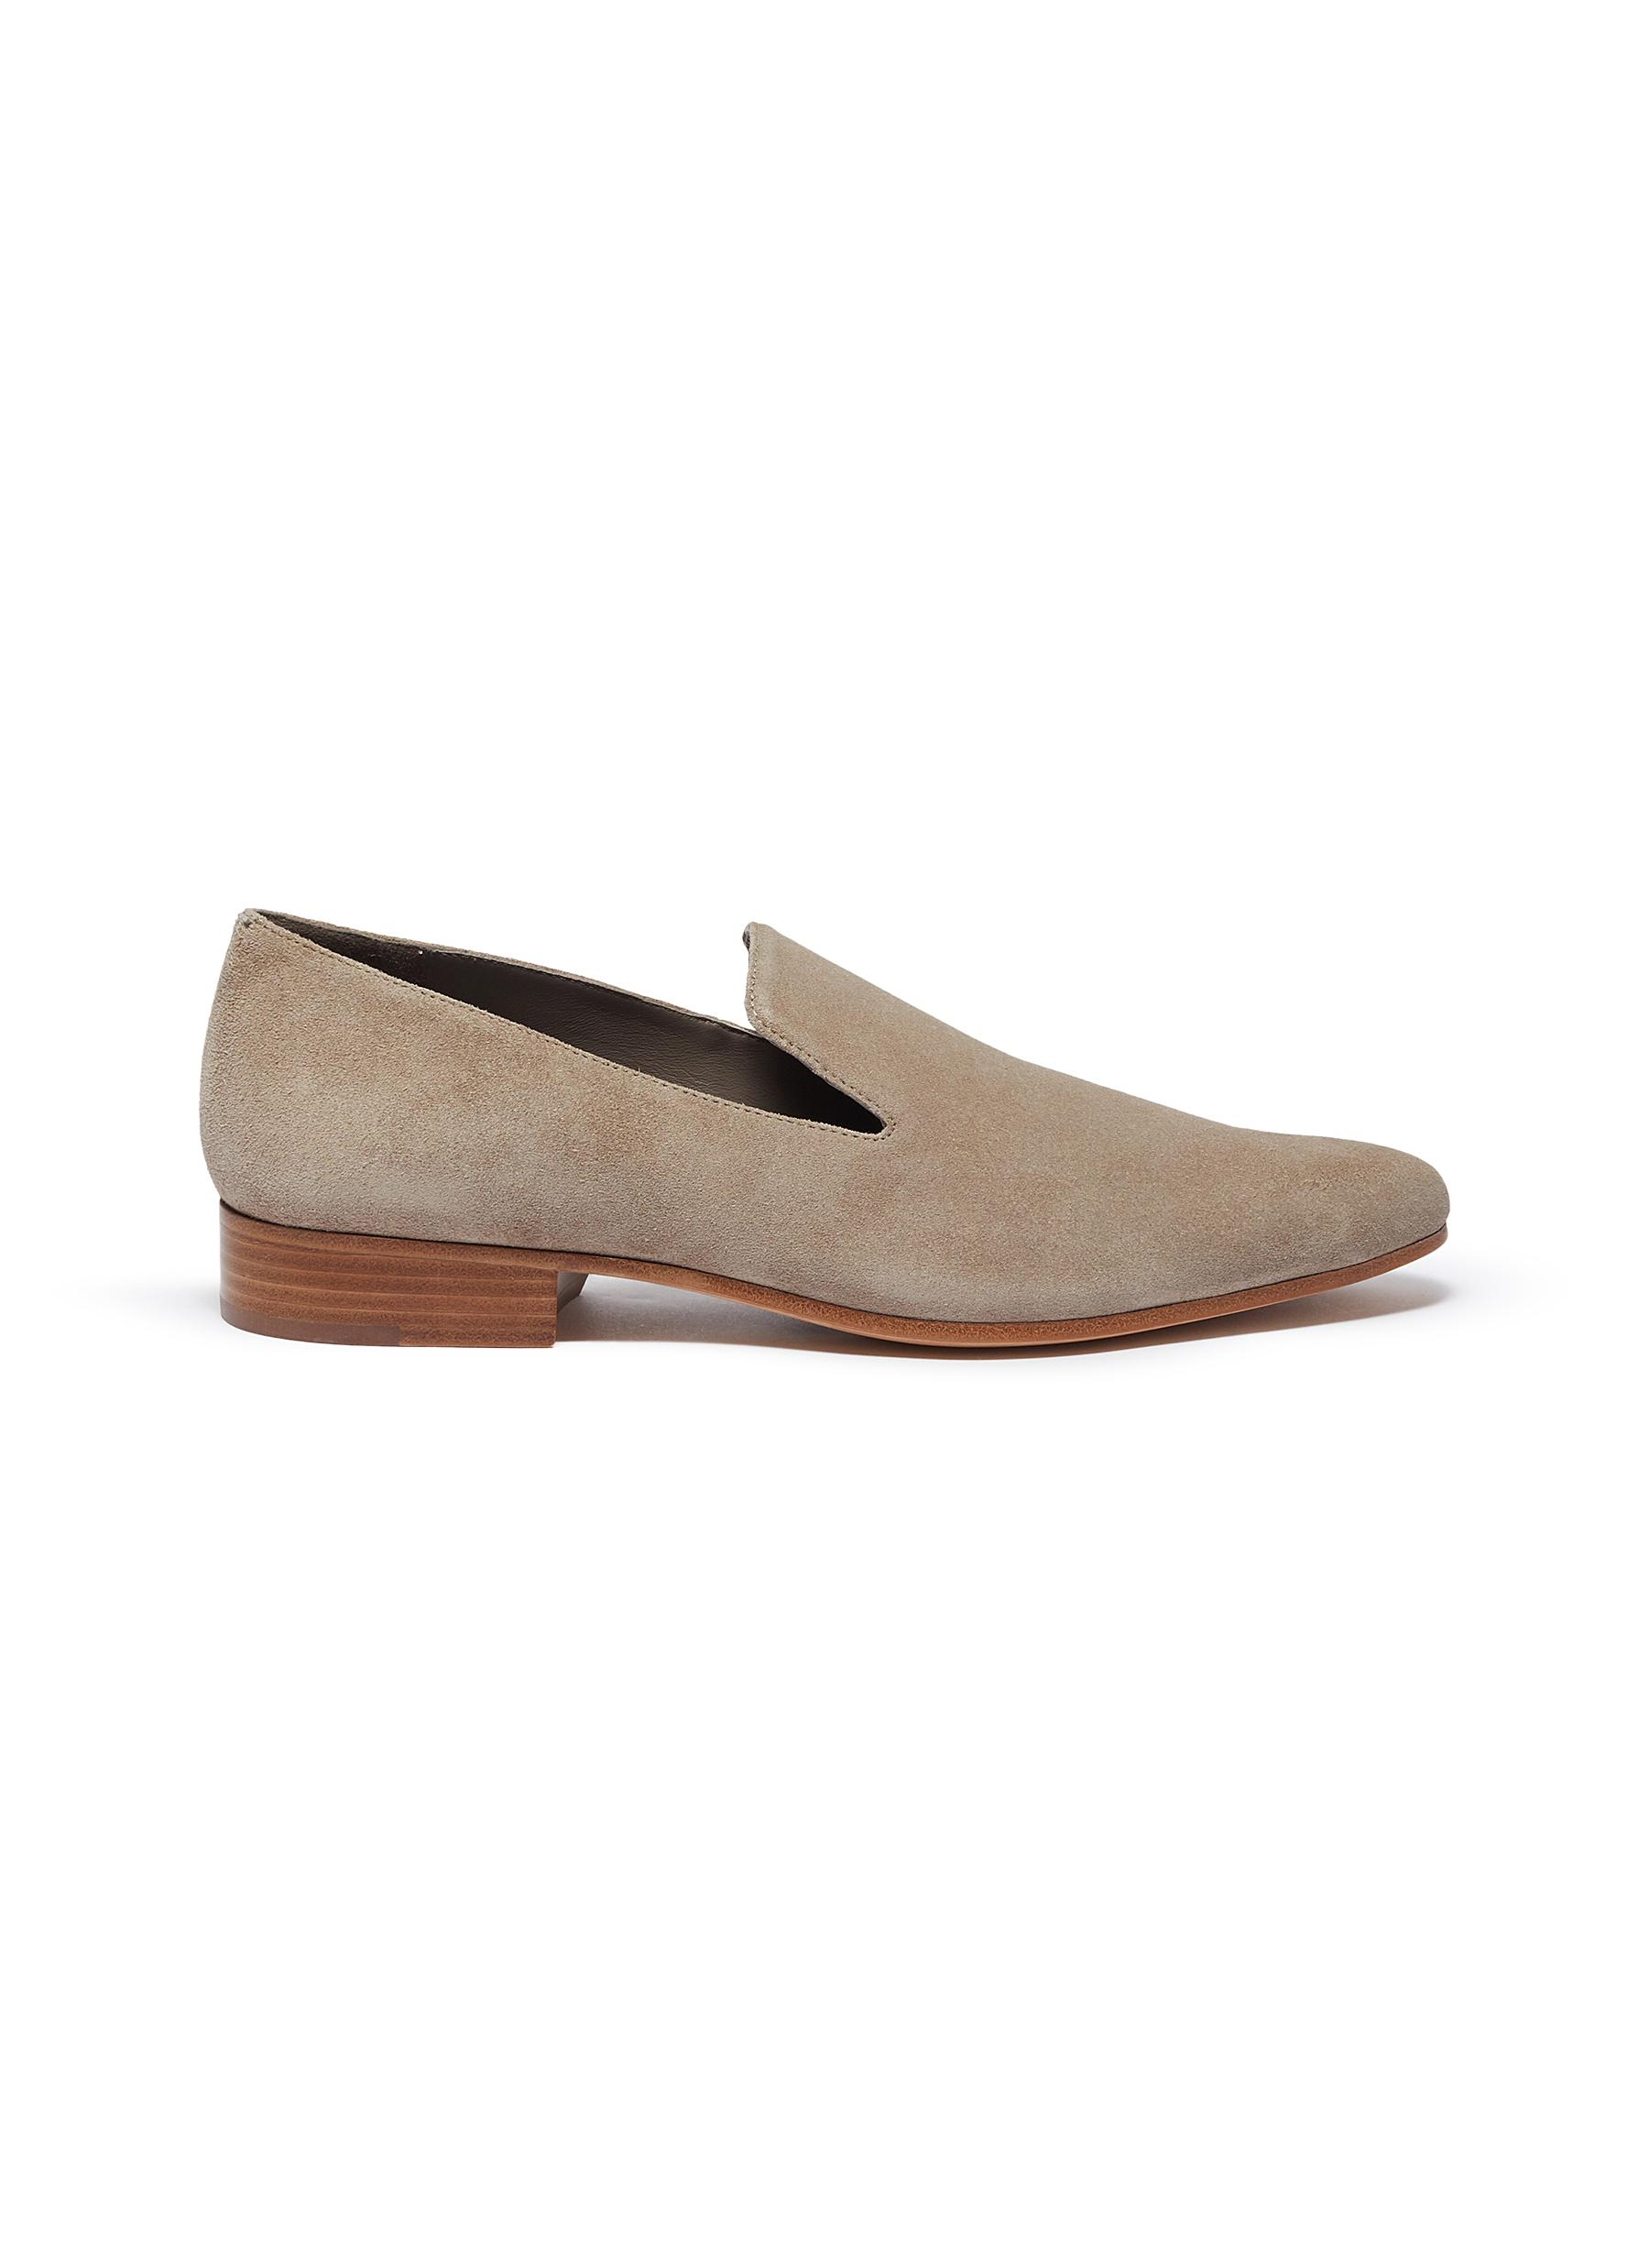 "Vince Flats ""Lela suede flat loafers"